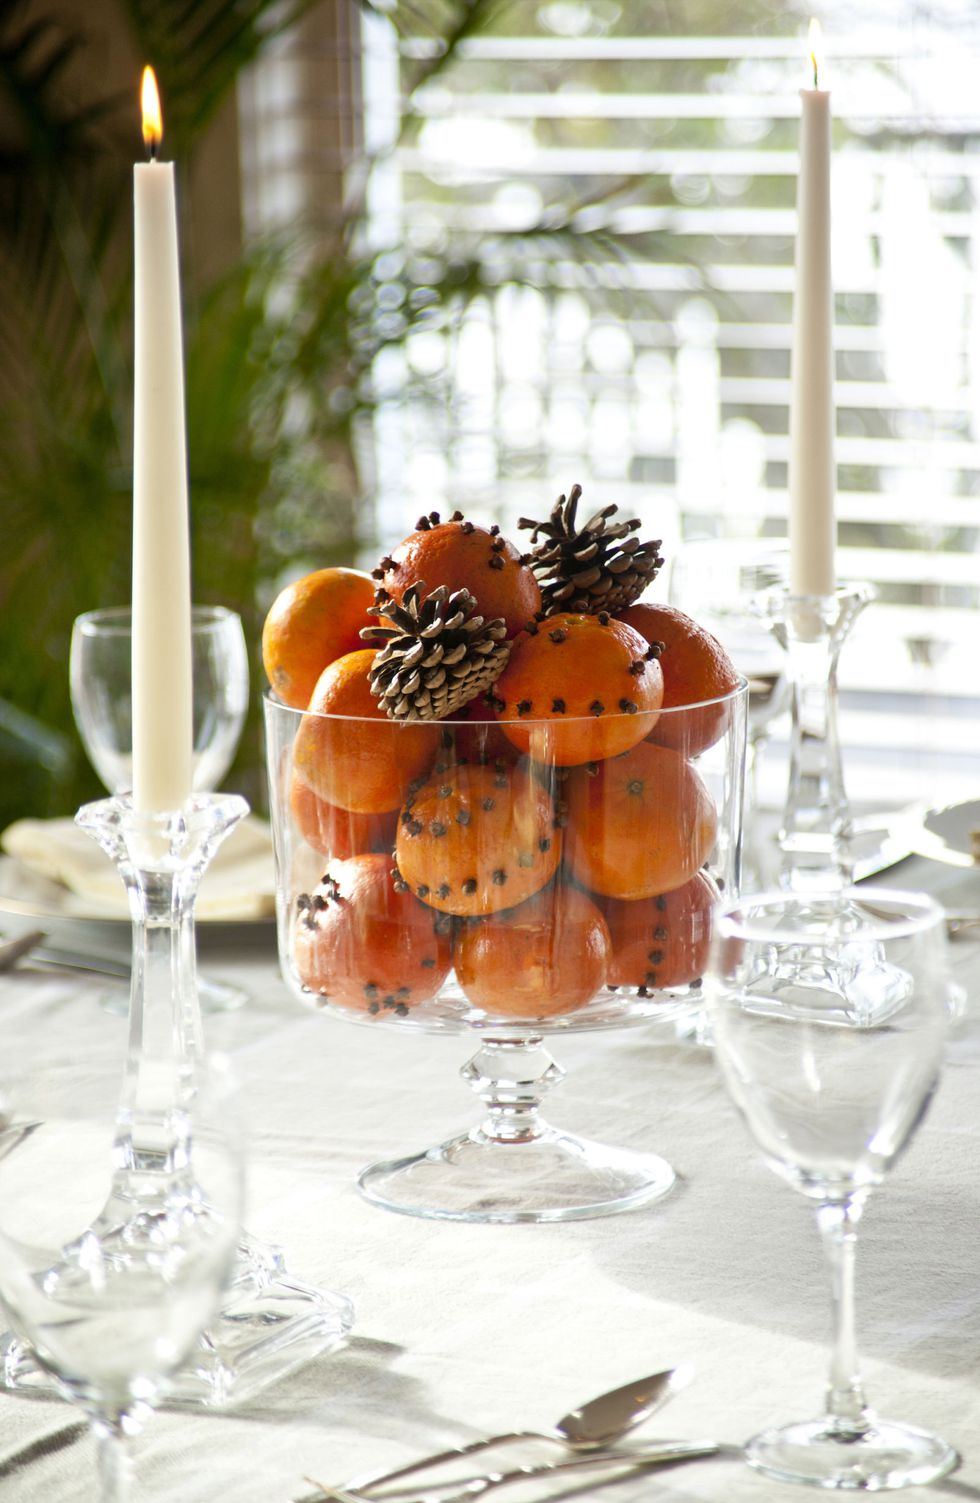 Tangerines in Glass Bowl - Photo Credit Elle Decor by Getty Images